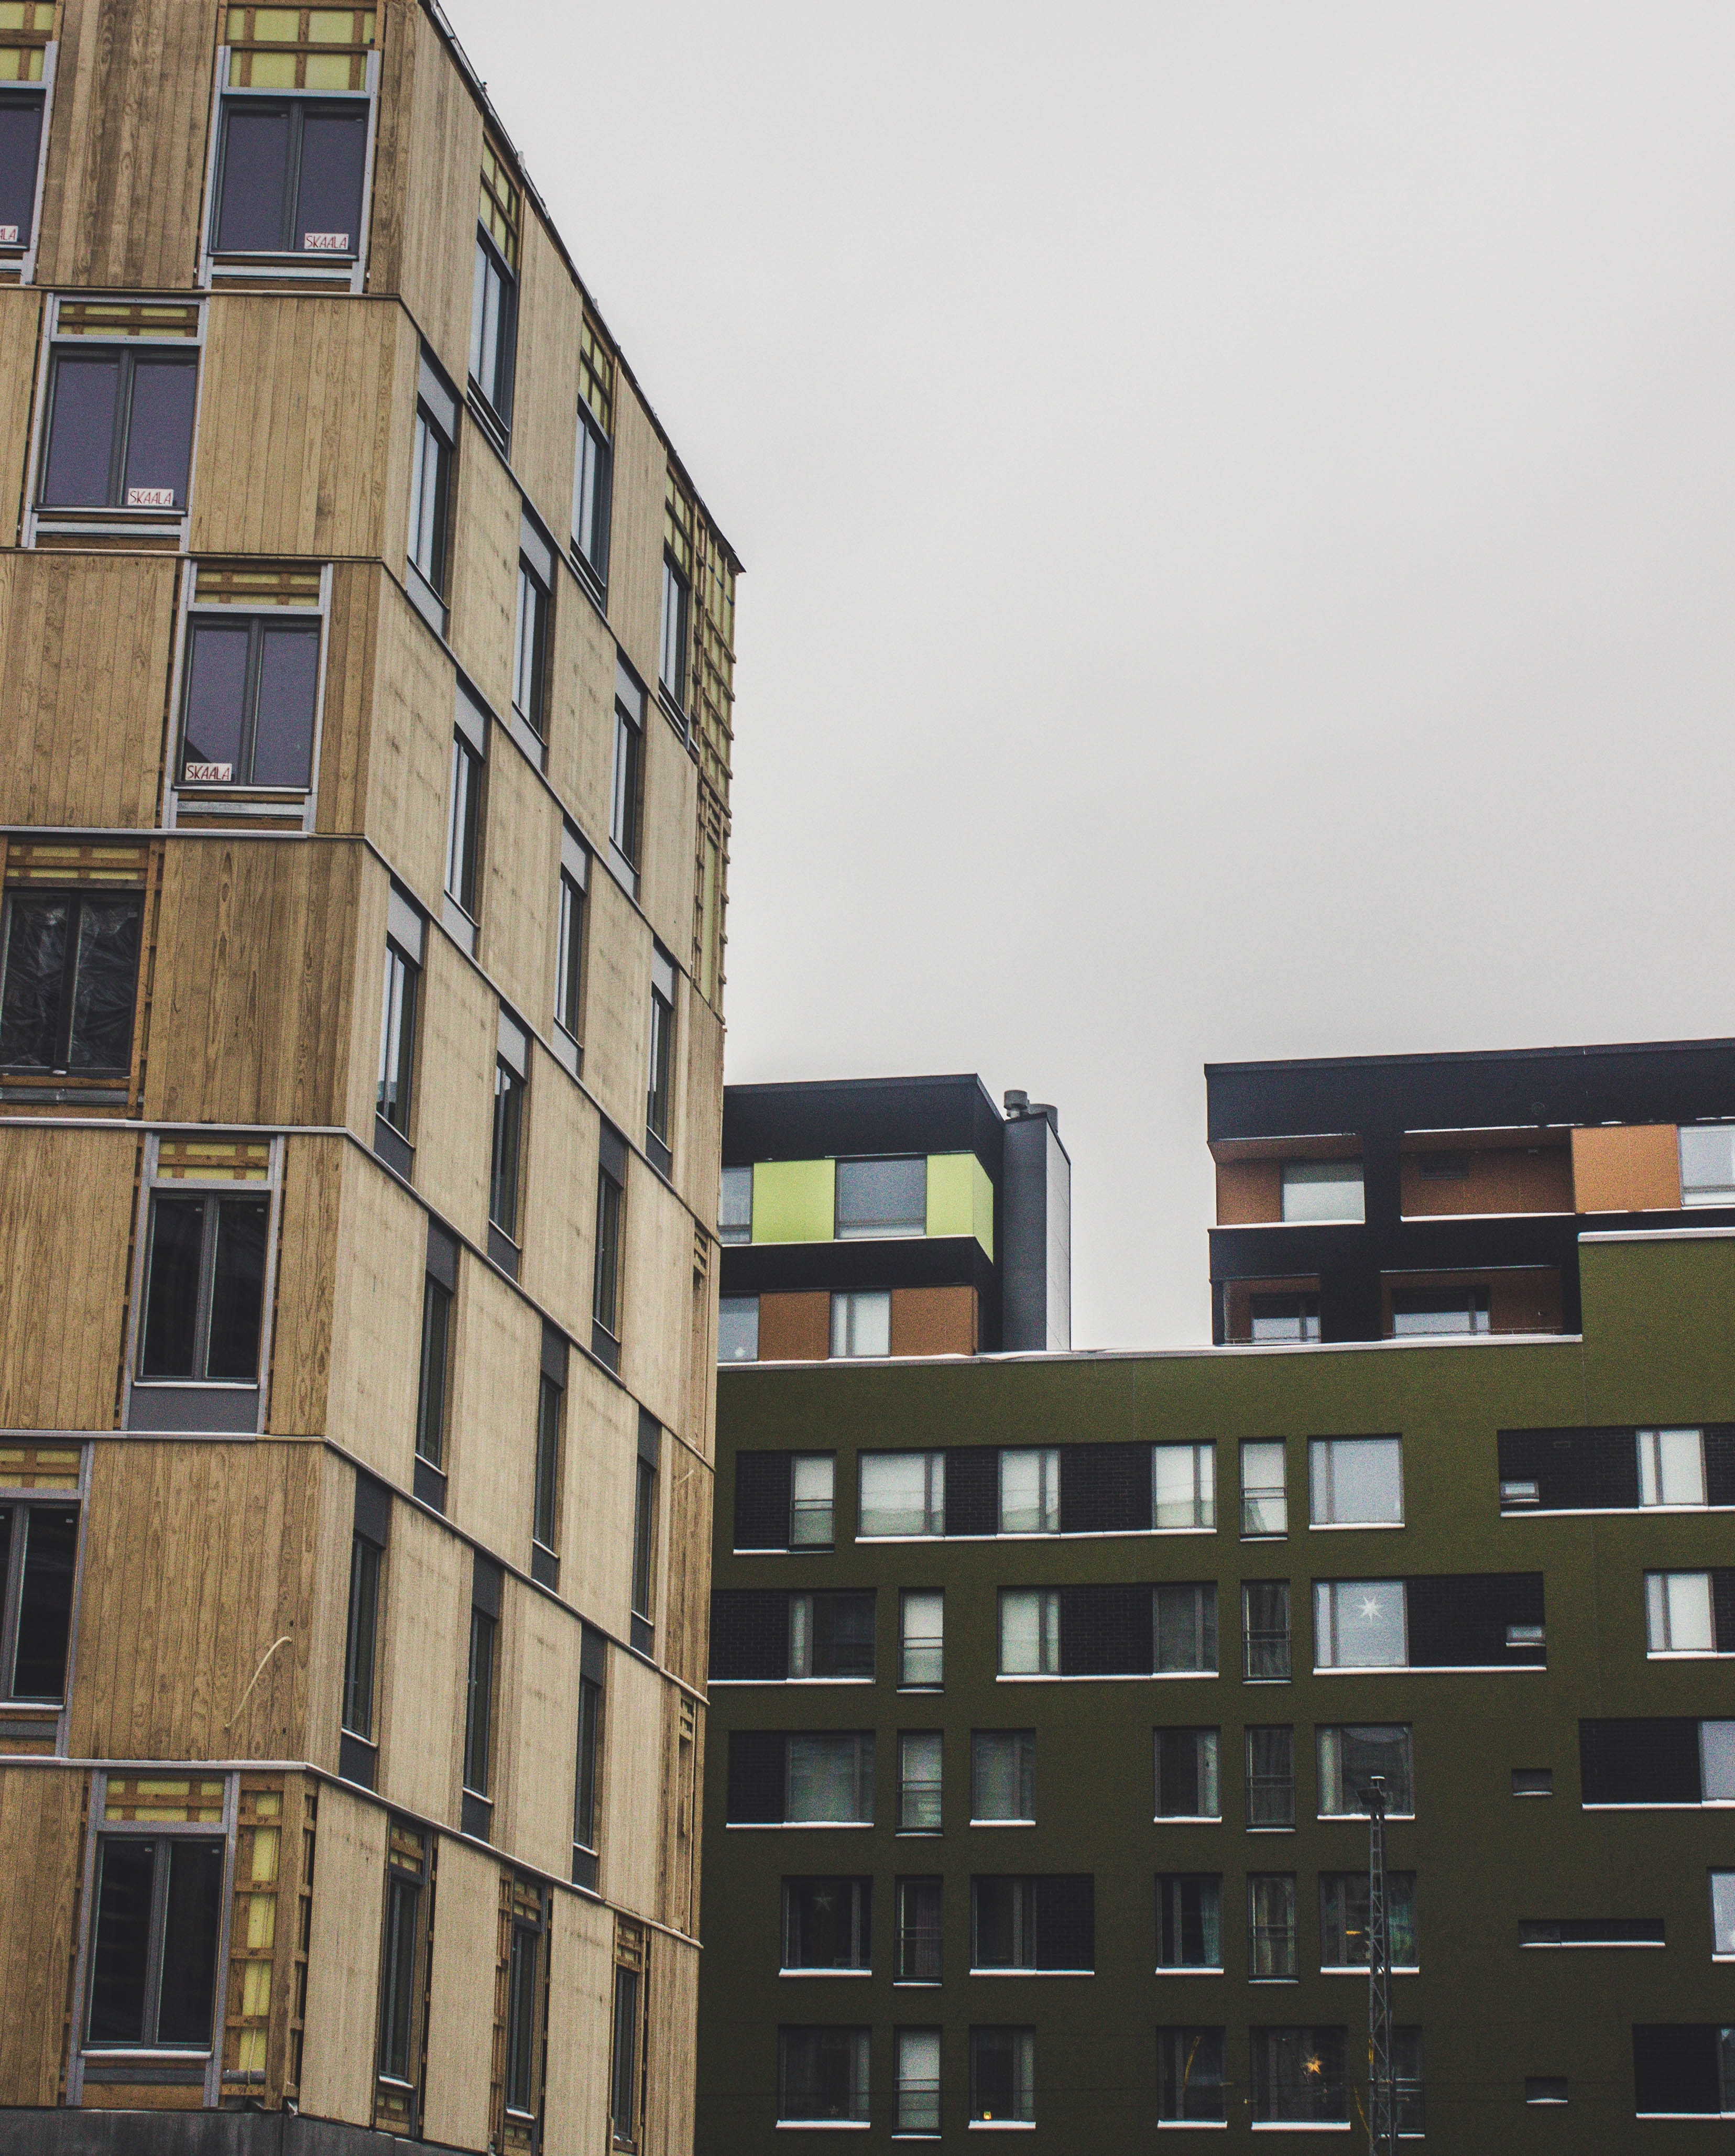 Photography of Buildings, Apartment, Modern, Urban, Tall, HQ Photo